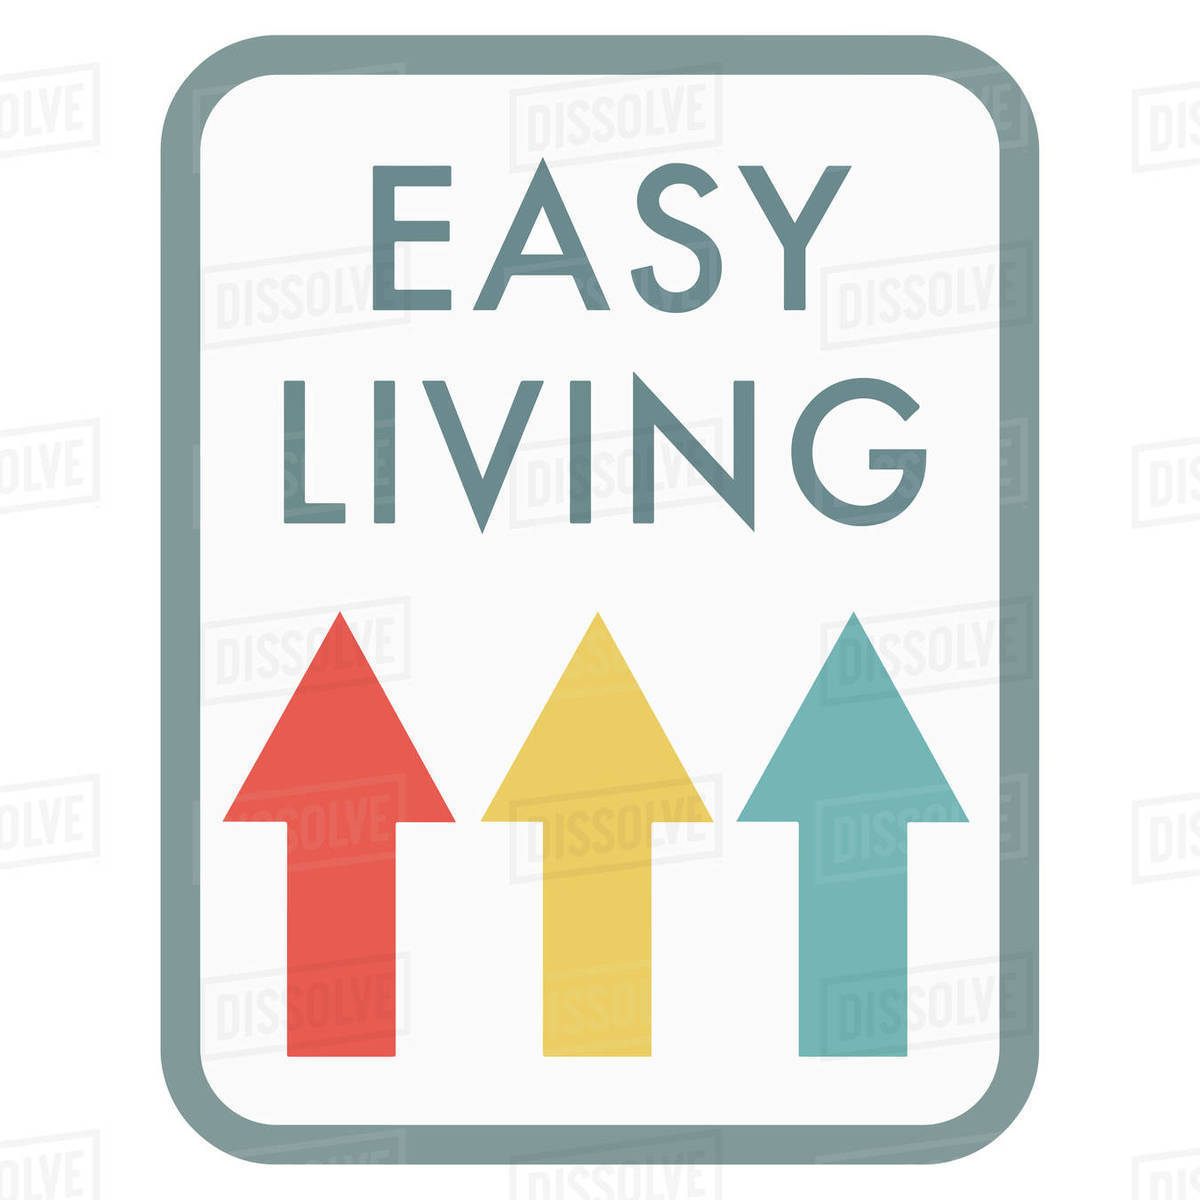 Illustration of easy living logo with arrows isolated on white background Royalty-free stock photo